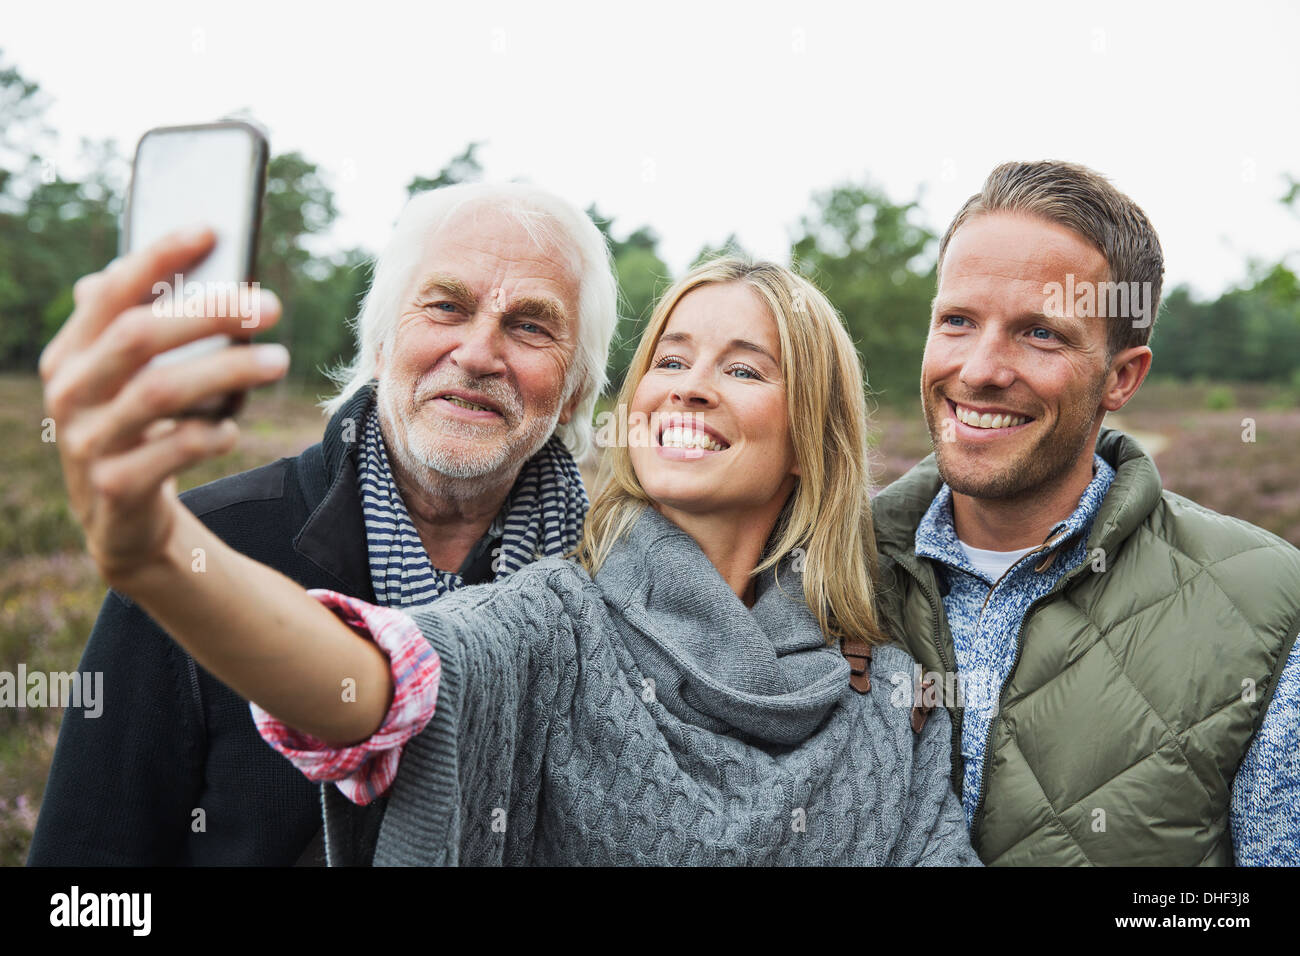 Mid adult woman taking photograph with camera phone - Stock Image